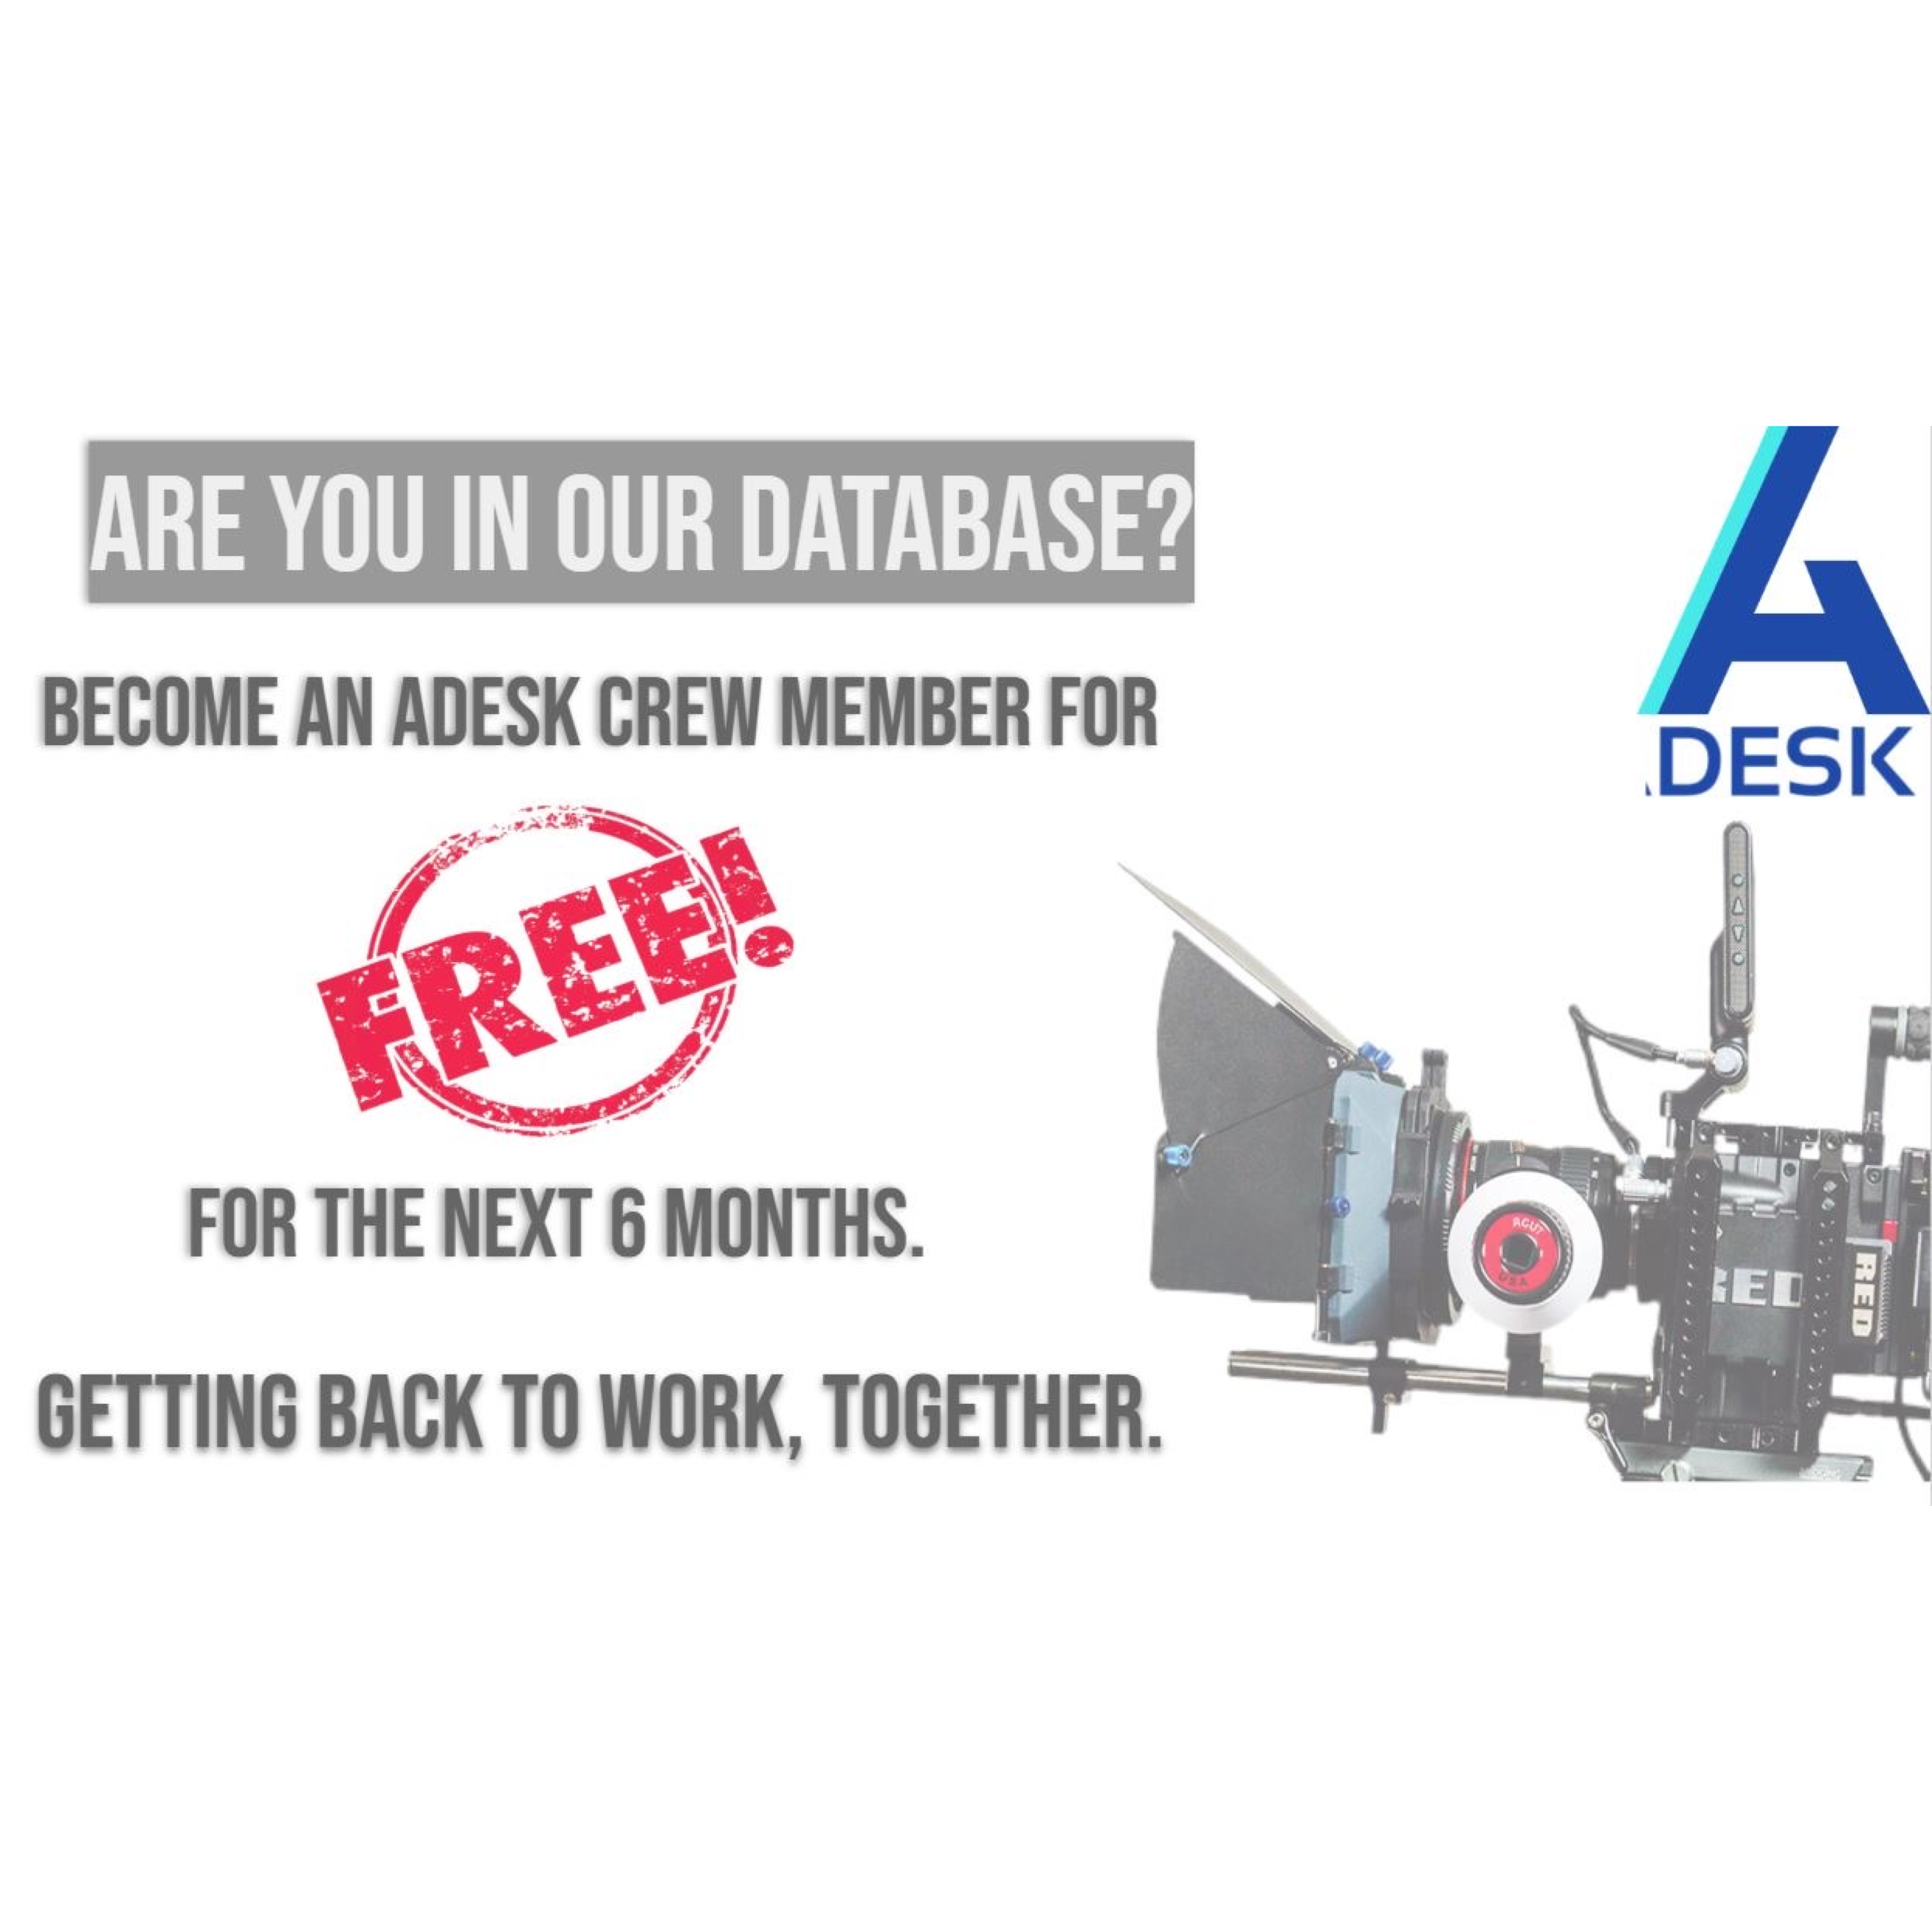 image0 1 Adesk App Crew Database is FREE for the Next 6 months to Vendors and Crew Members to Support them During the Crisis